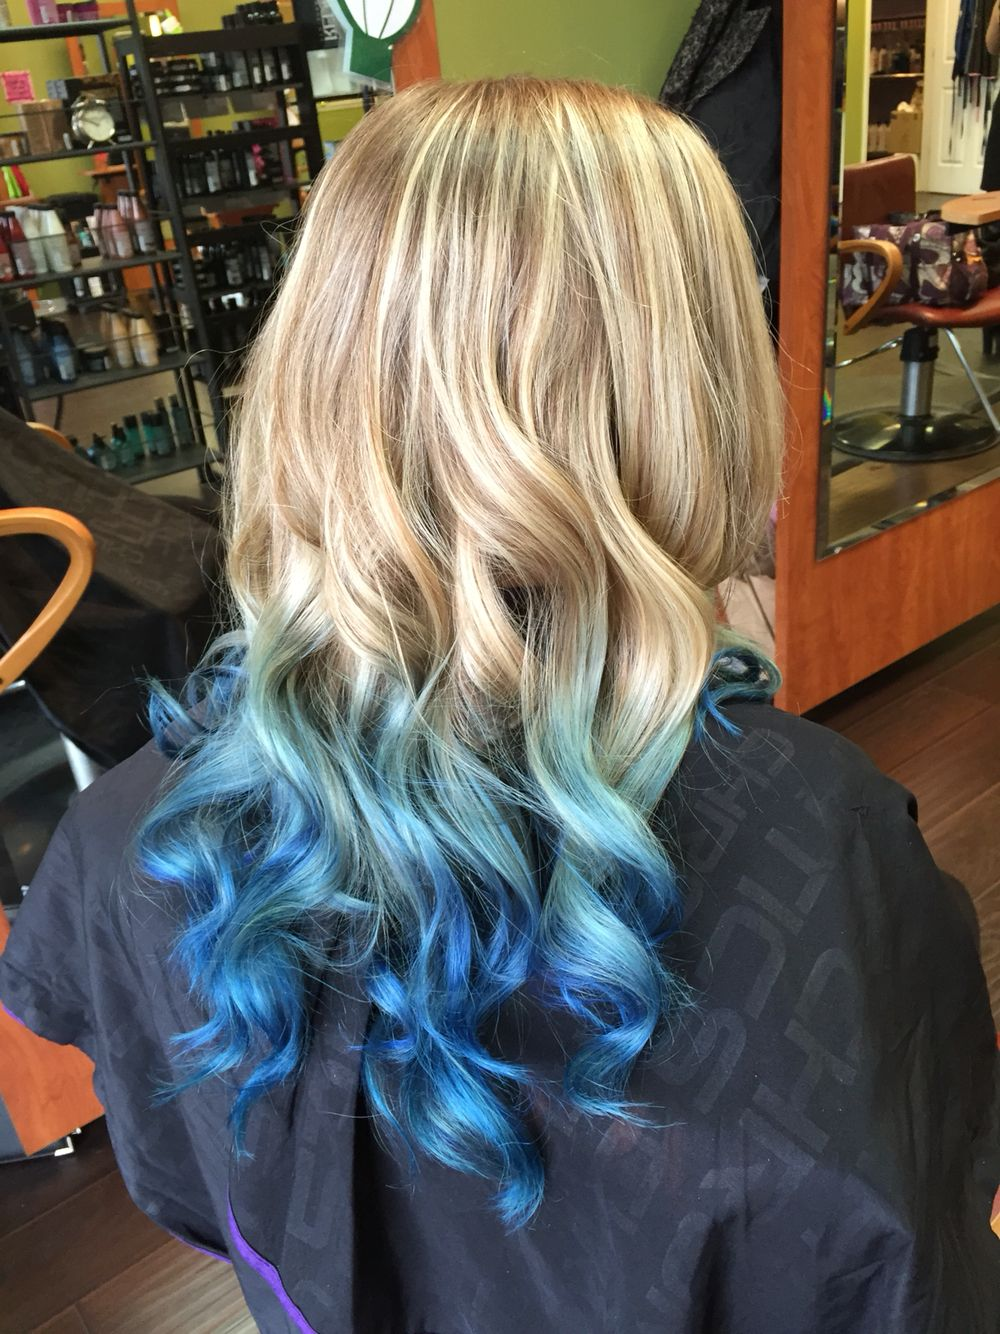 Beautiful Long Blond To Blue Ombre Hair Using Pravana Vivids Hair Colors Hair Done By Mindy Hardy Blue Ombre Hair Blue Tips Hair Blonde And Blue Hair